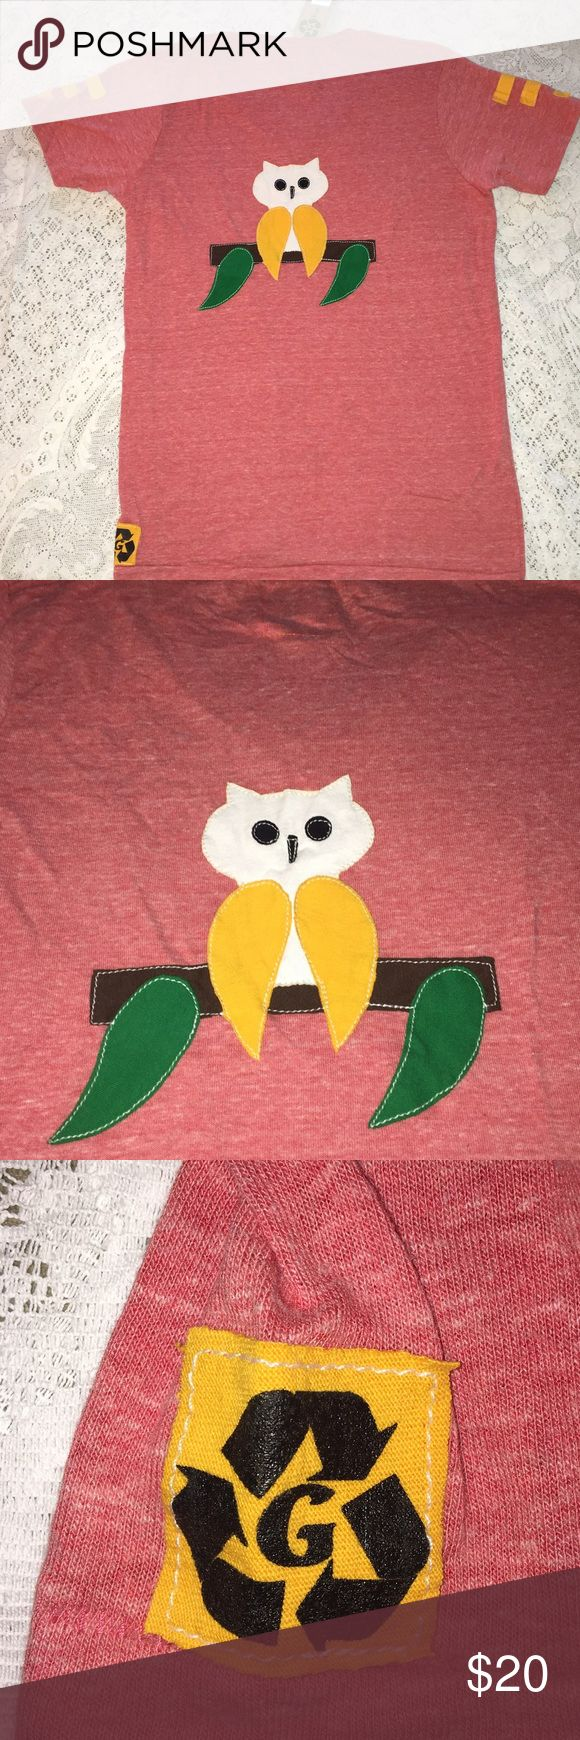 NWT Chi Omega Owl print red V neck boyfriend tee NWT Chi Omega boyfriend soft Washed red v neck tee shirt. Size AM. 50% polyester 38% cotton 12% rayon. Owl logo appliqué on back. Solid front. Relaxed, loose fit. Made in USA. $54 retail. Rare and one of a kind. #greek #life #college #university #chi #omega #sorority #pledge #red #big #little #sister #nwt #tee #owl  Never used. Smoke free home. Check closet for similar items & additional sororities. ❌no trades❌ FIRM Tops Tees - Short Sleeve